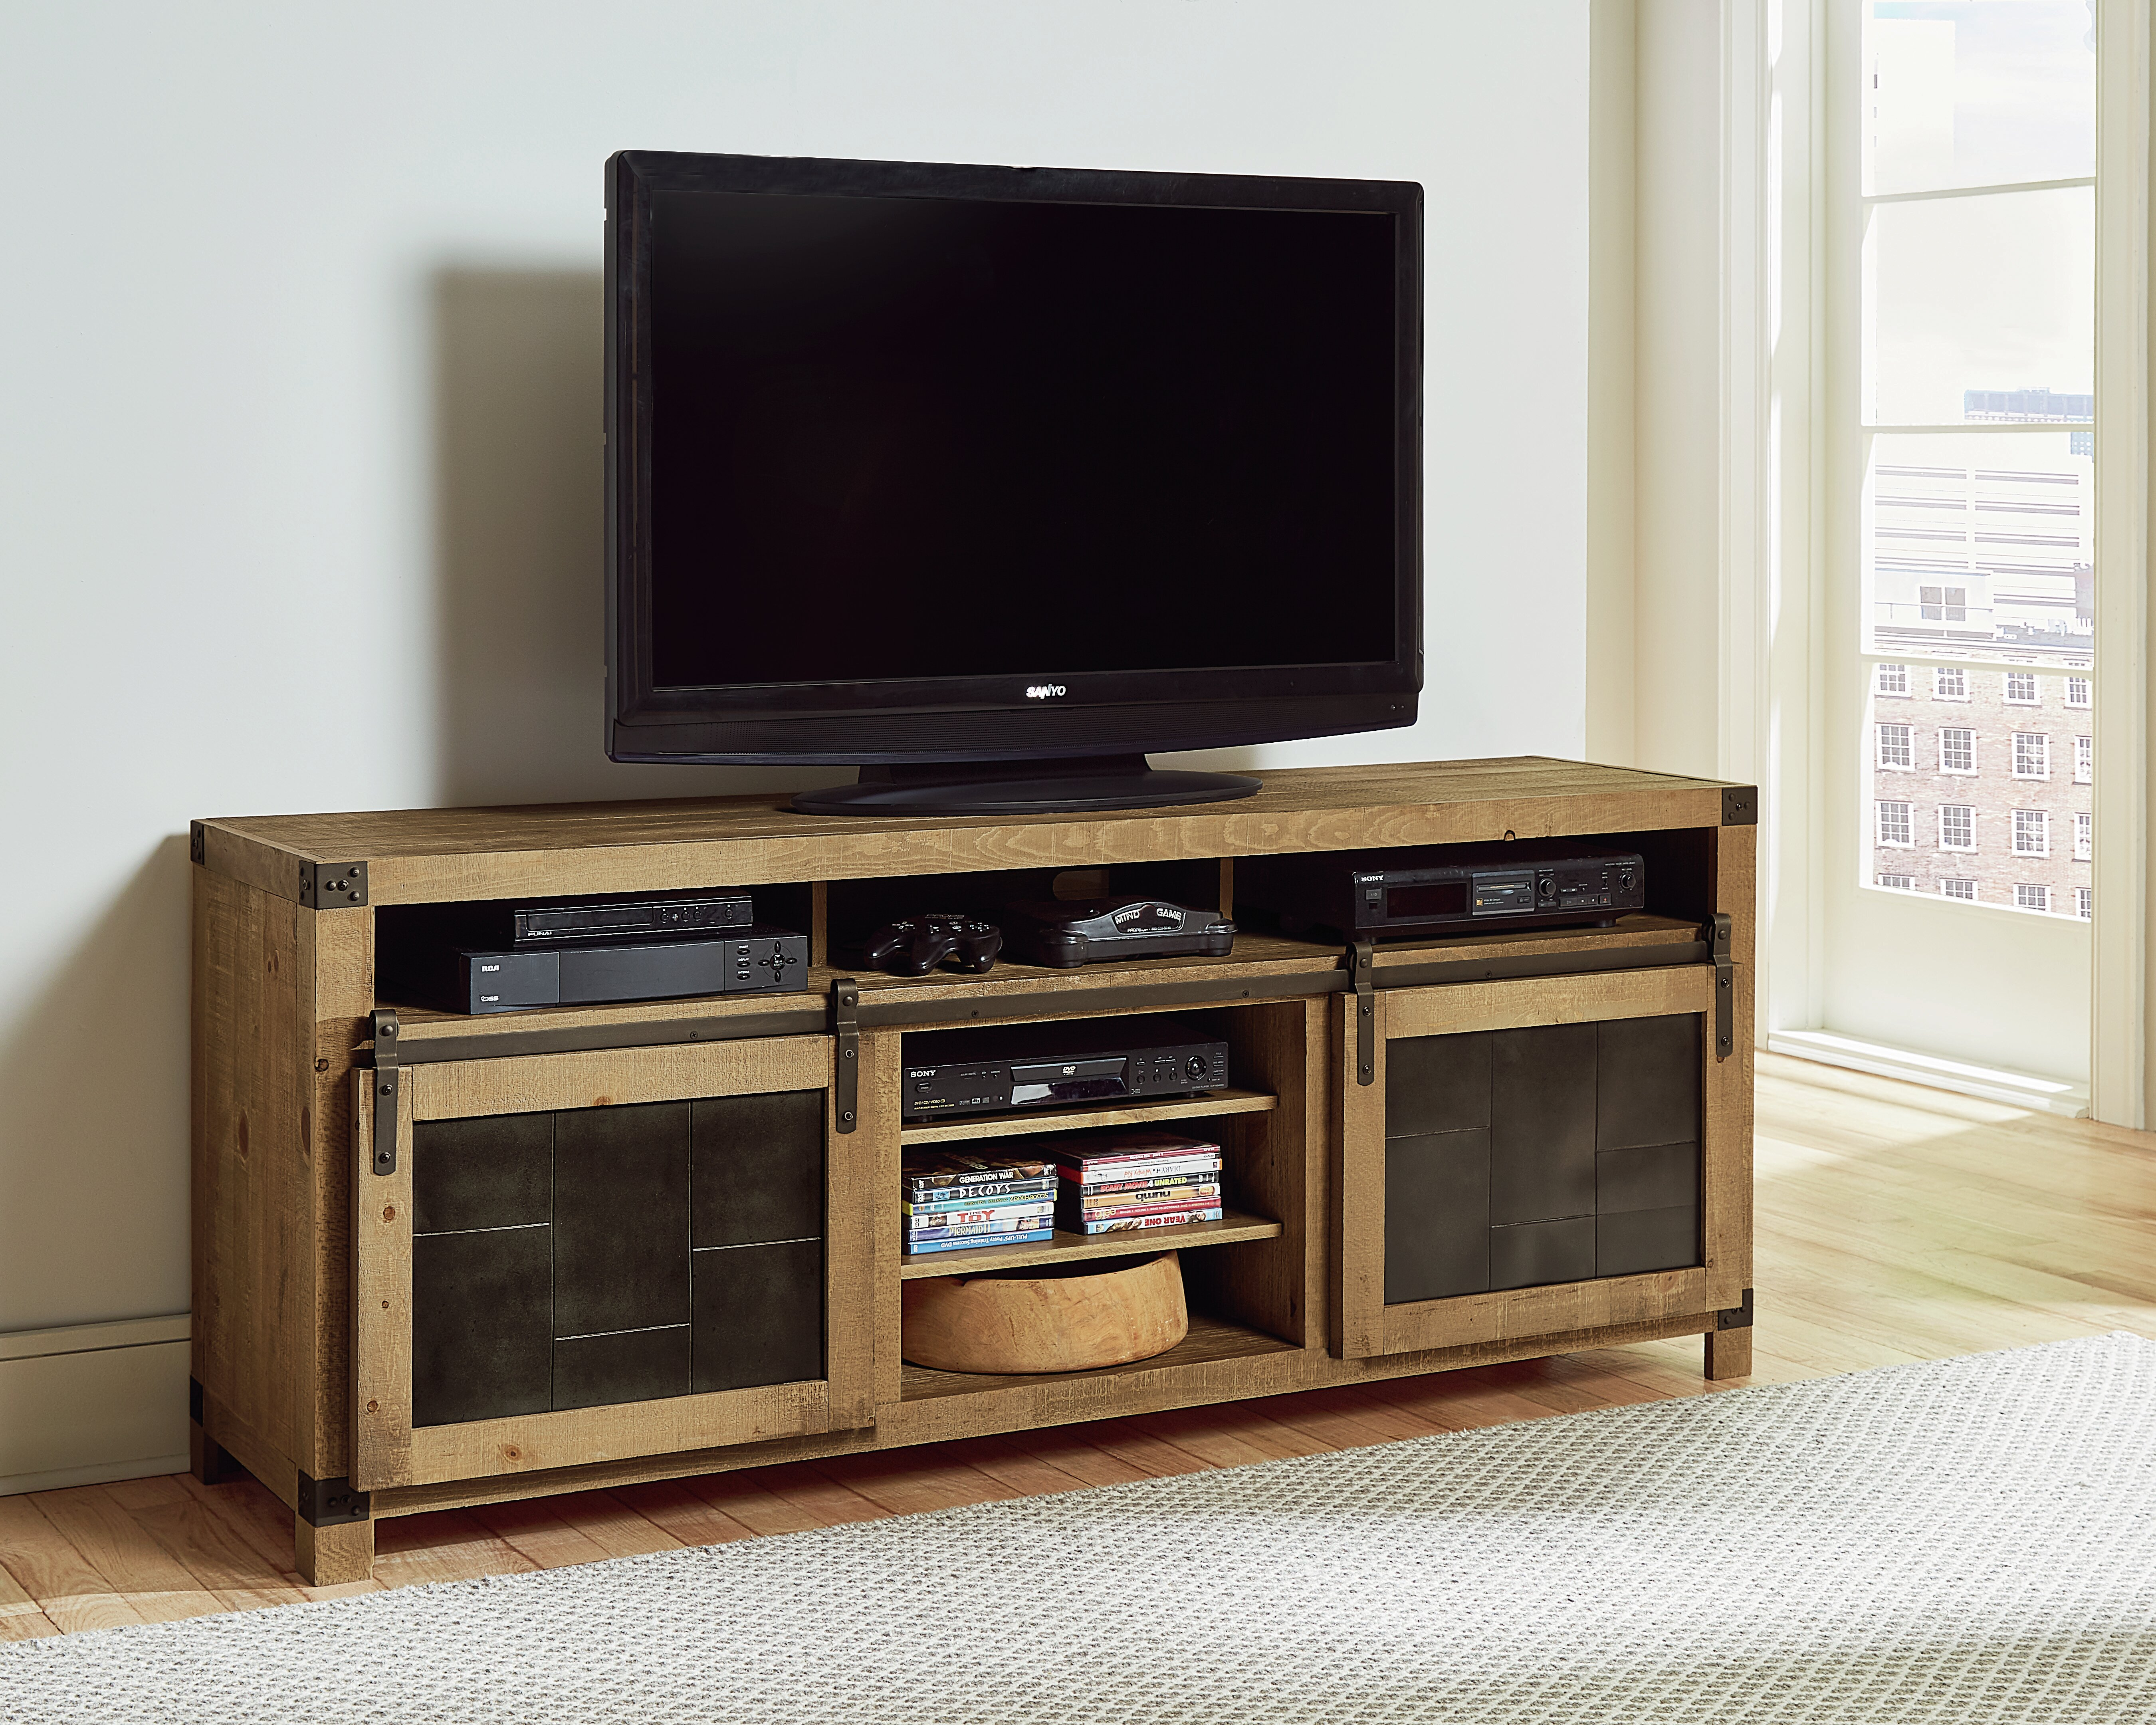 Georgie Wood Tv Stand For Tvs Up To 78 Inches Reviews